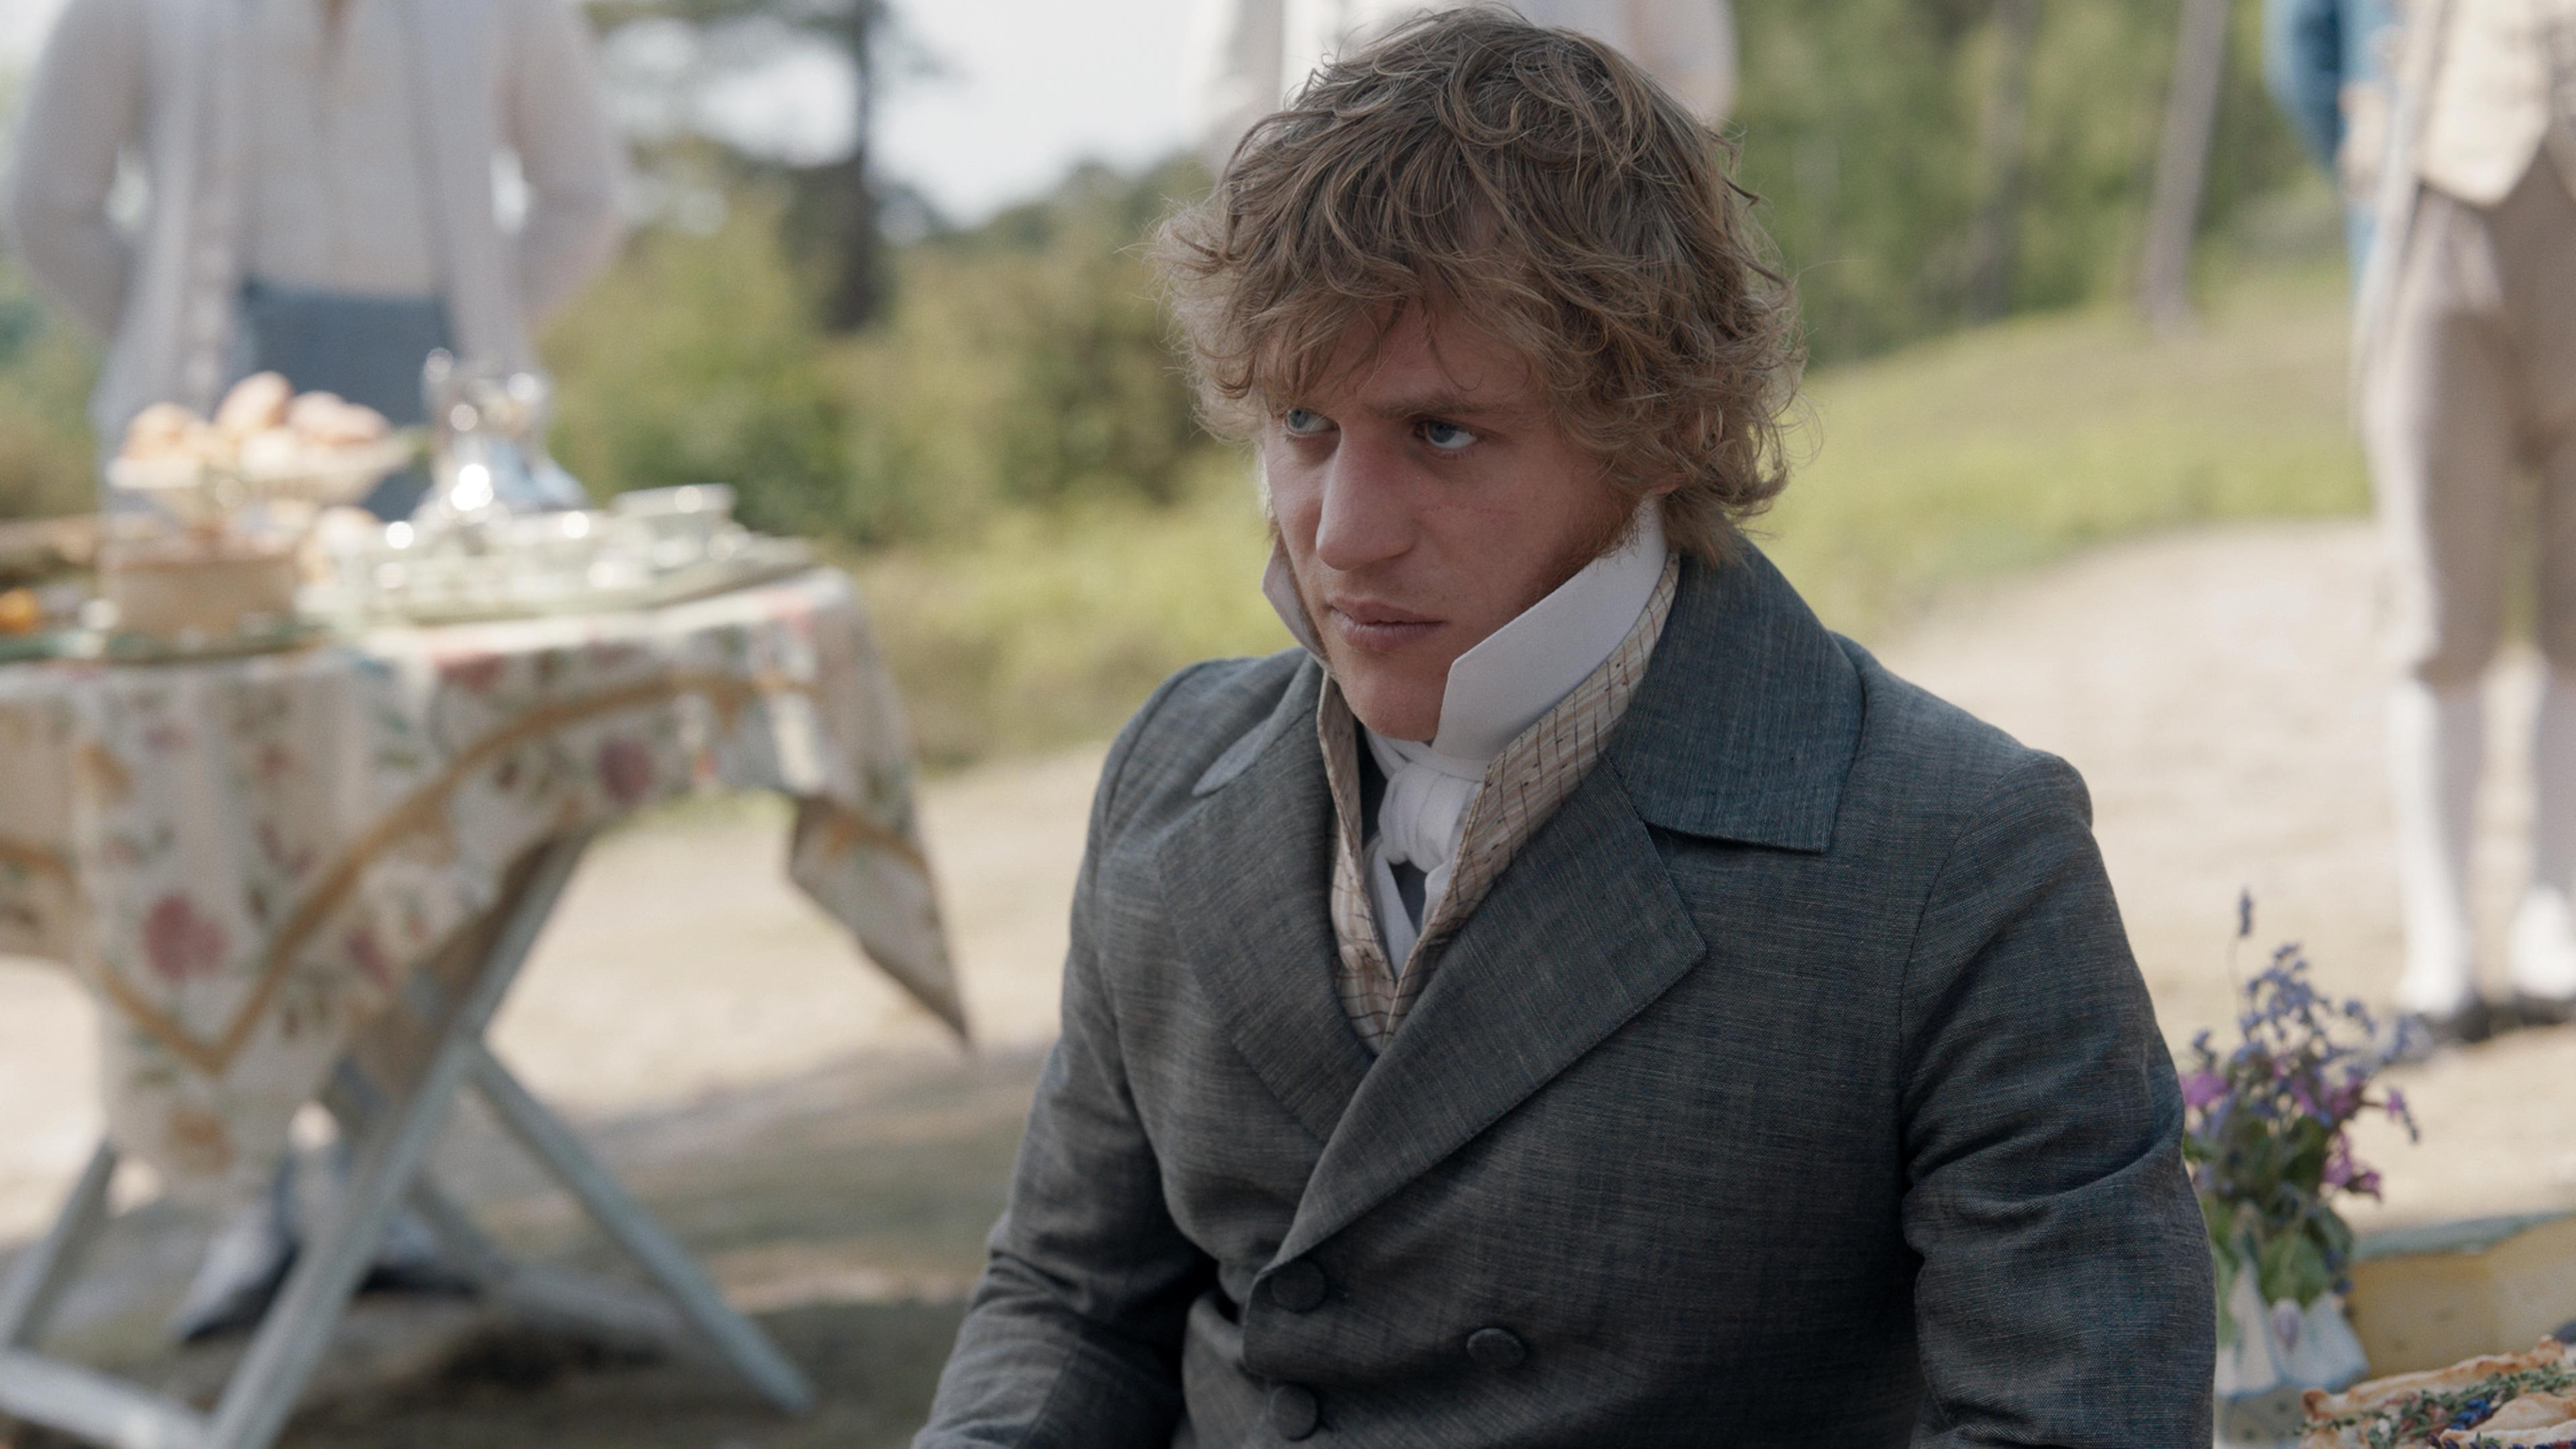 Johnny Flyn as George Knightley in a still from <i>Emma</i>. (Focus Features)